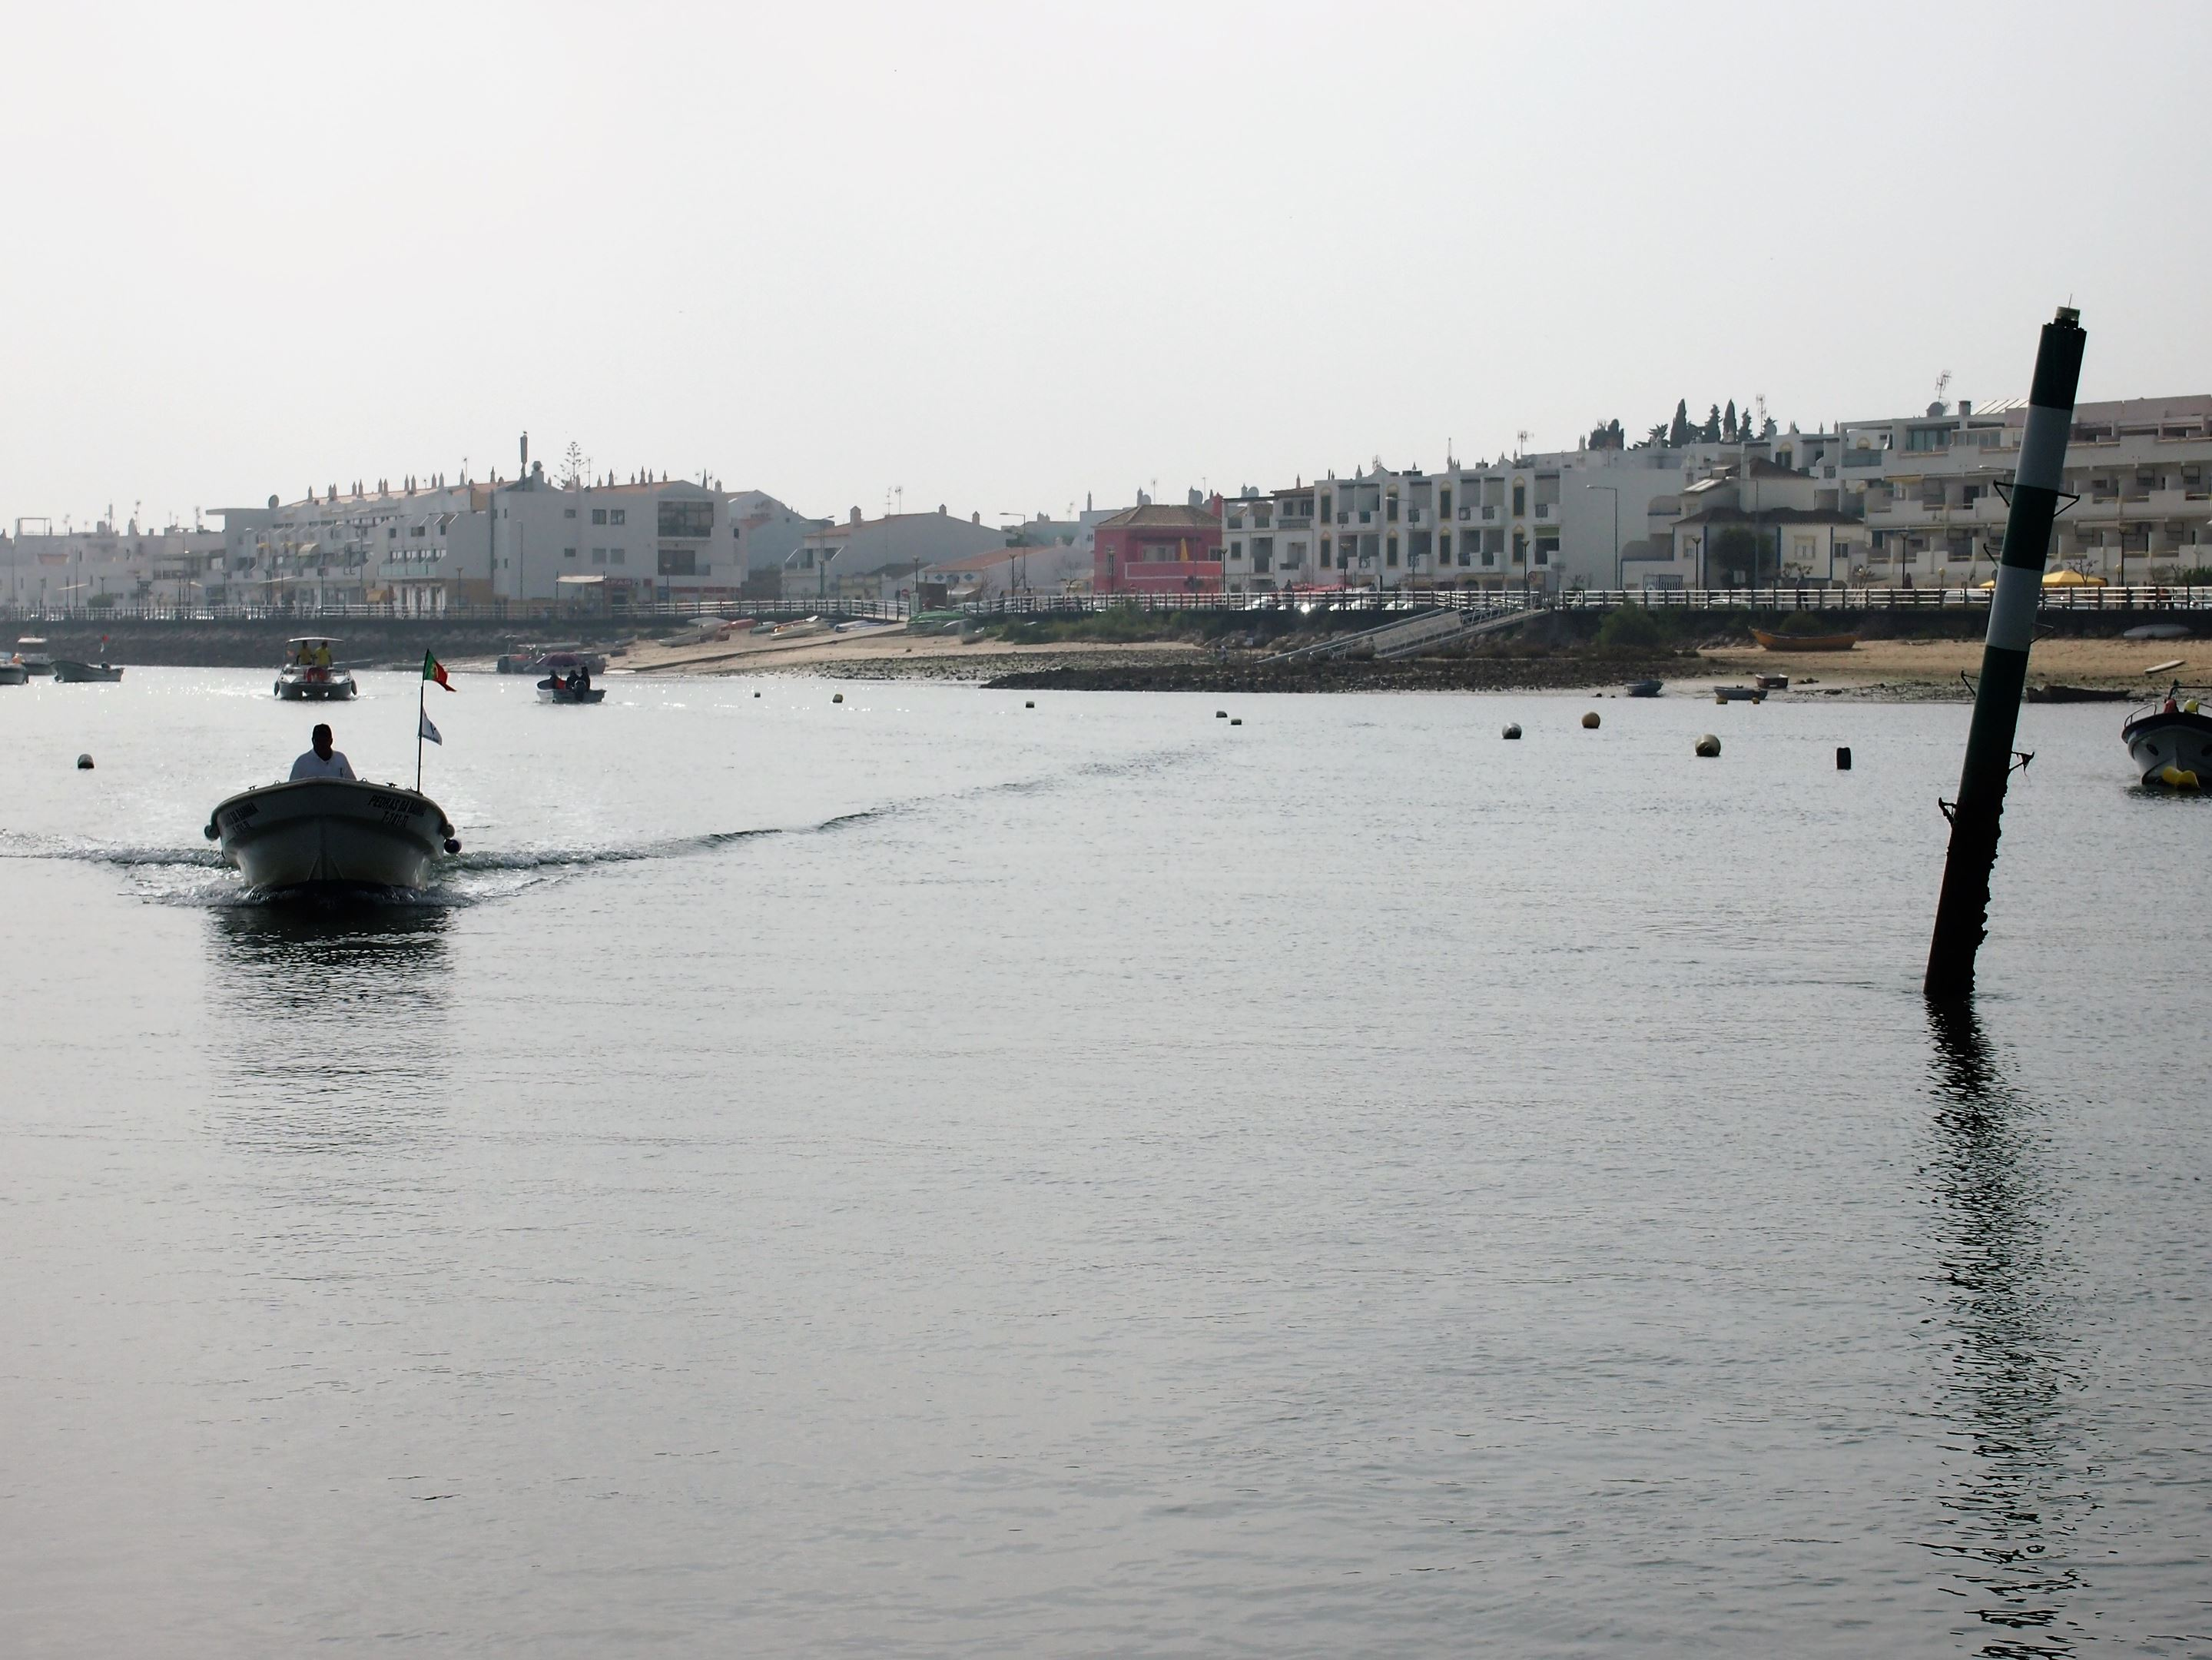 A small ferry boat on its way to Ila de Cabanas with Cabanas de Tavira in the background